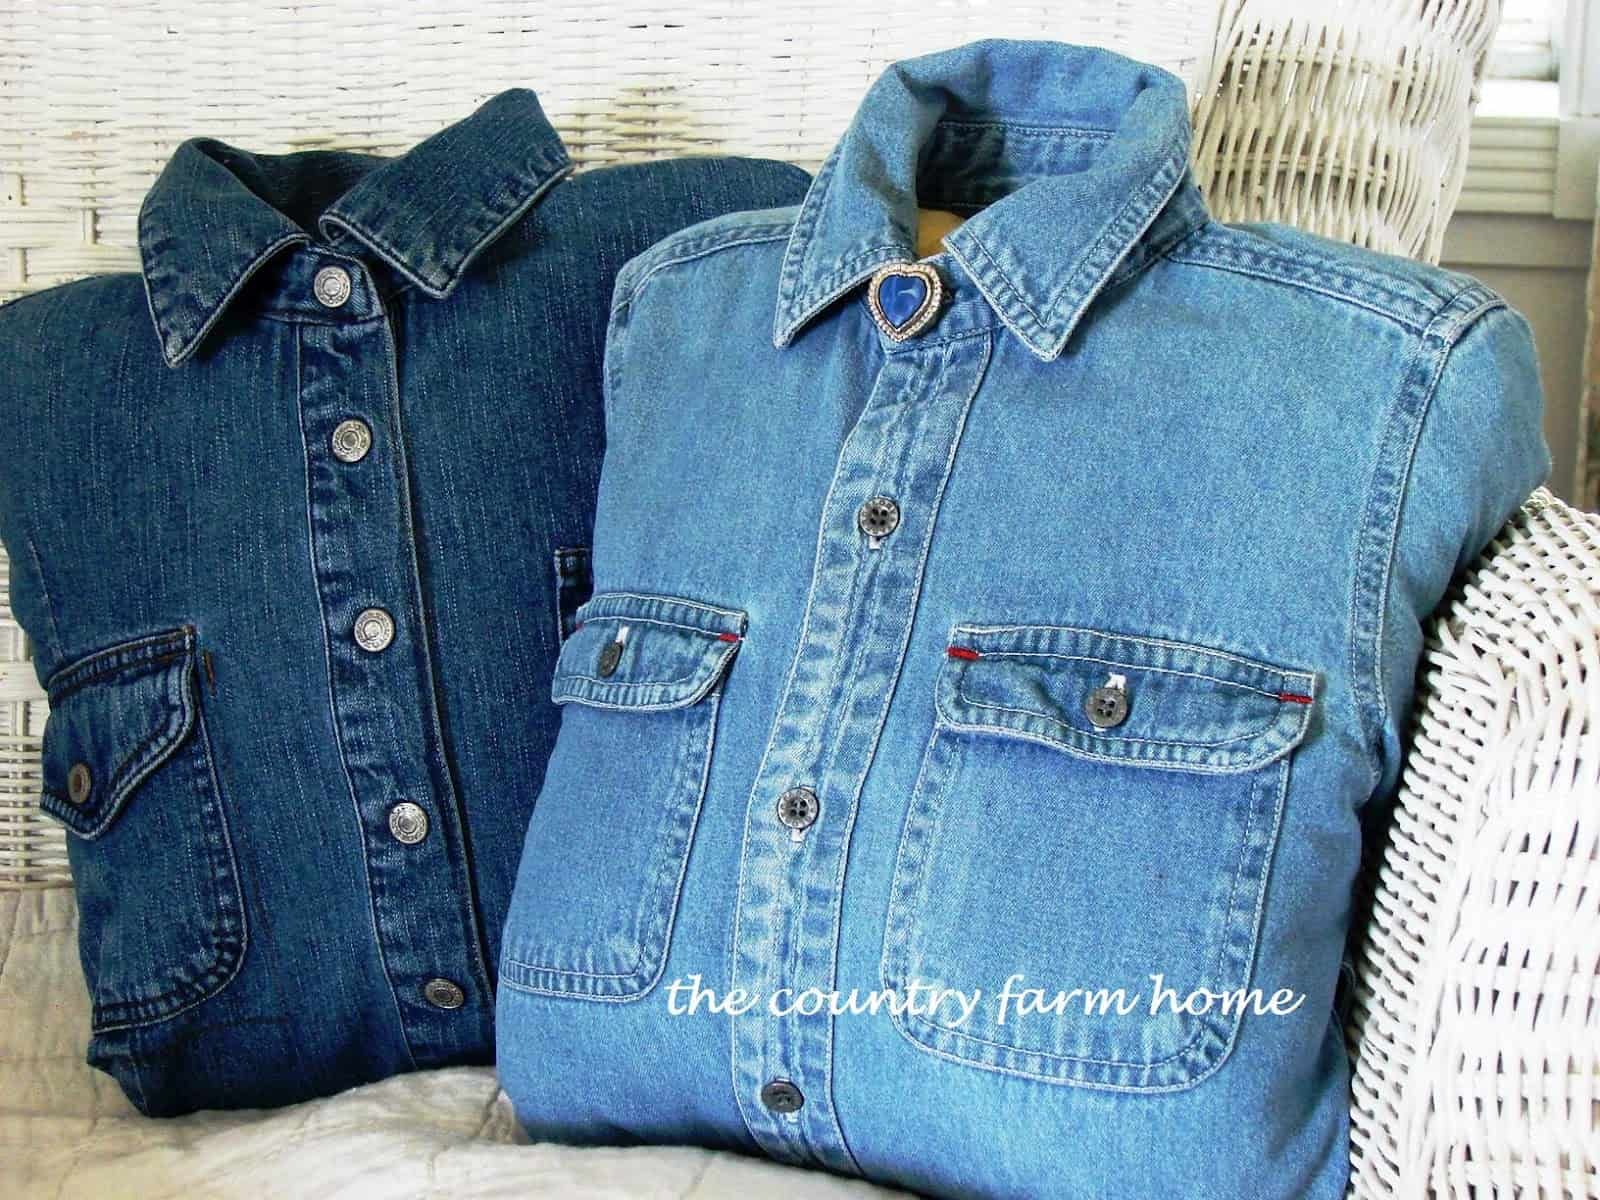 Denim shirt pillow